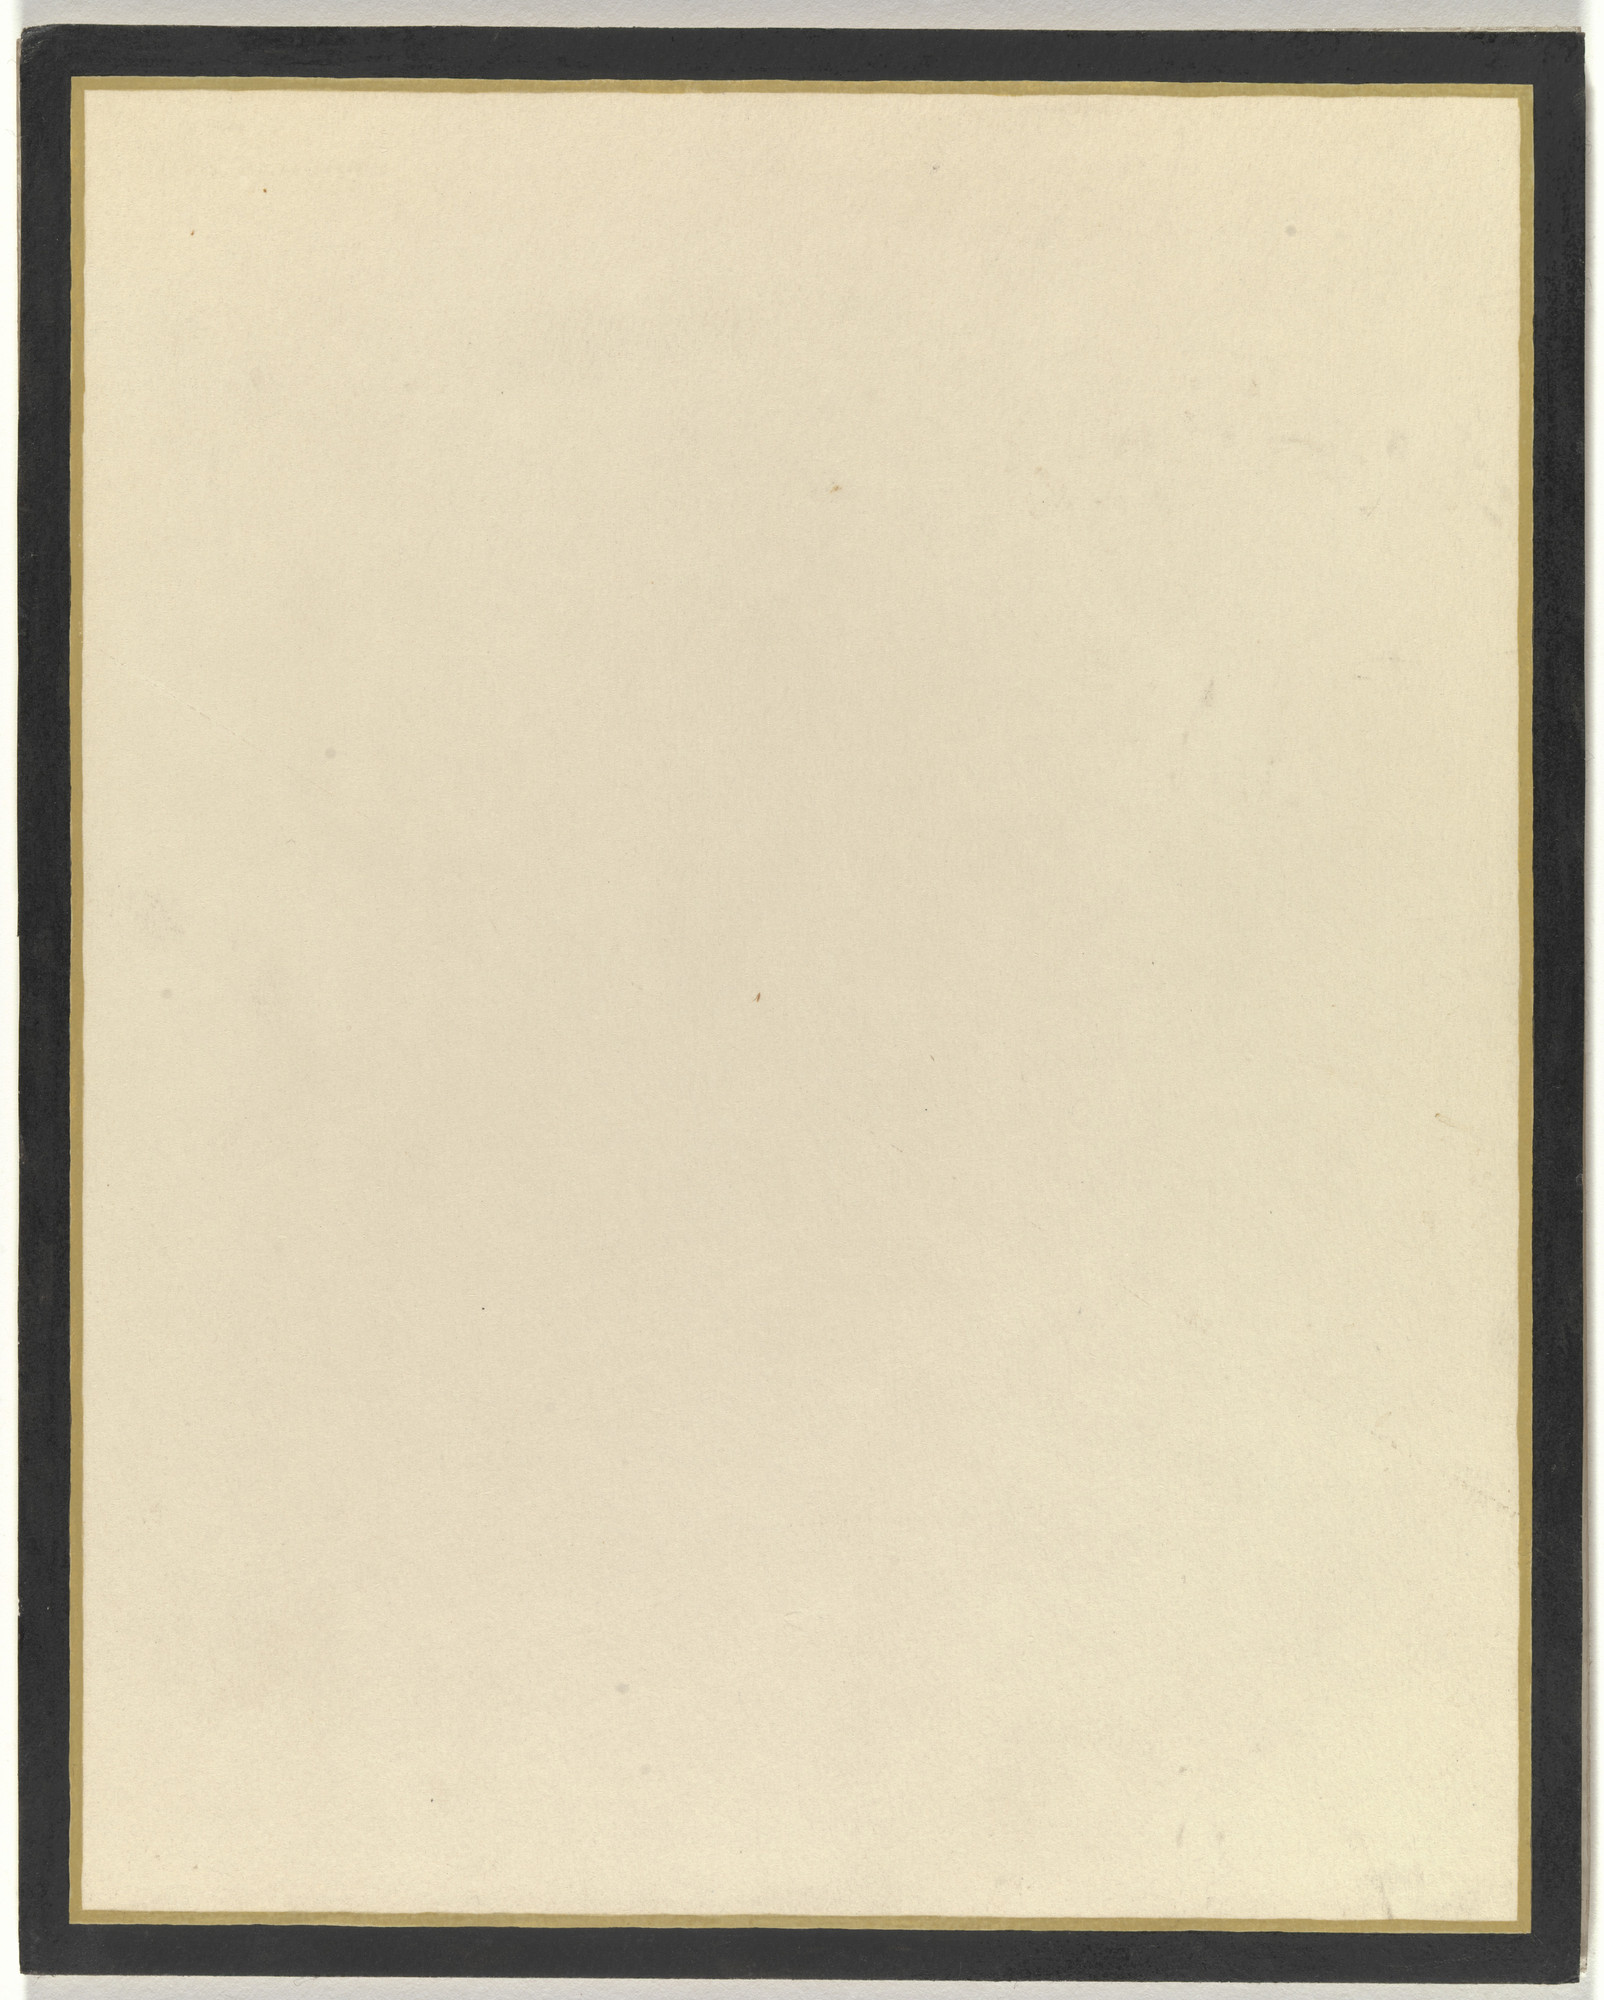 Jo Baer. Yellow - Sombre. 1965